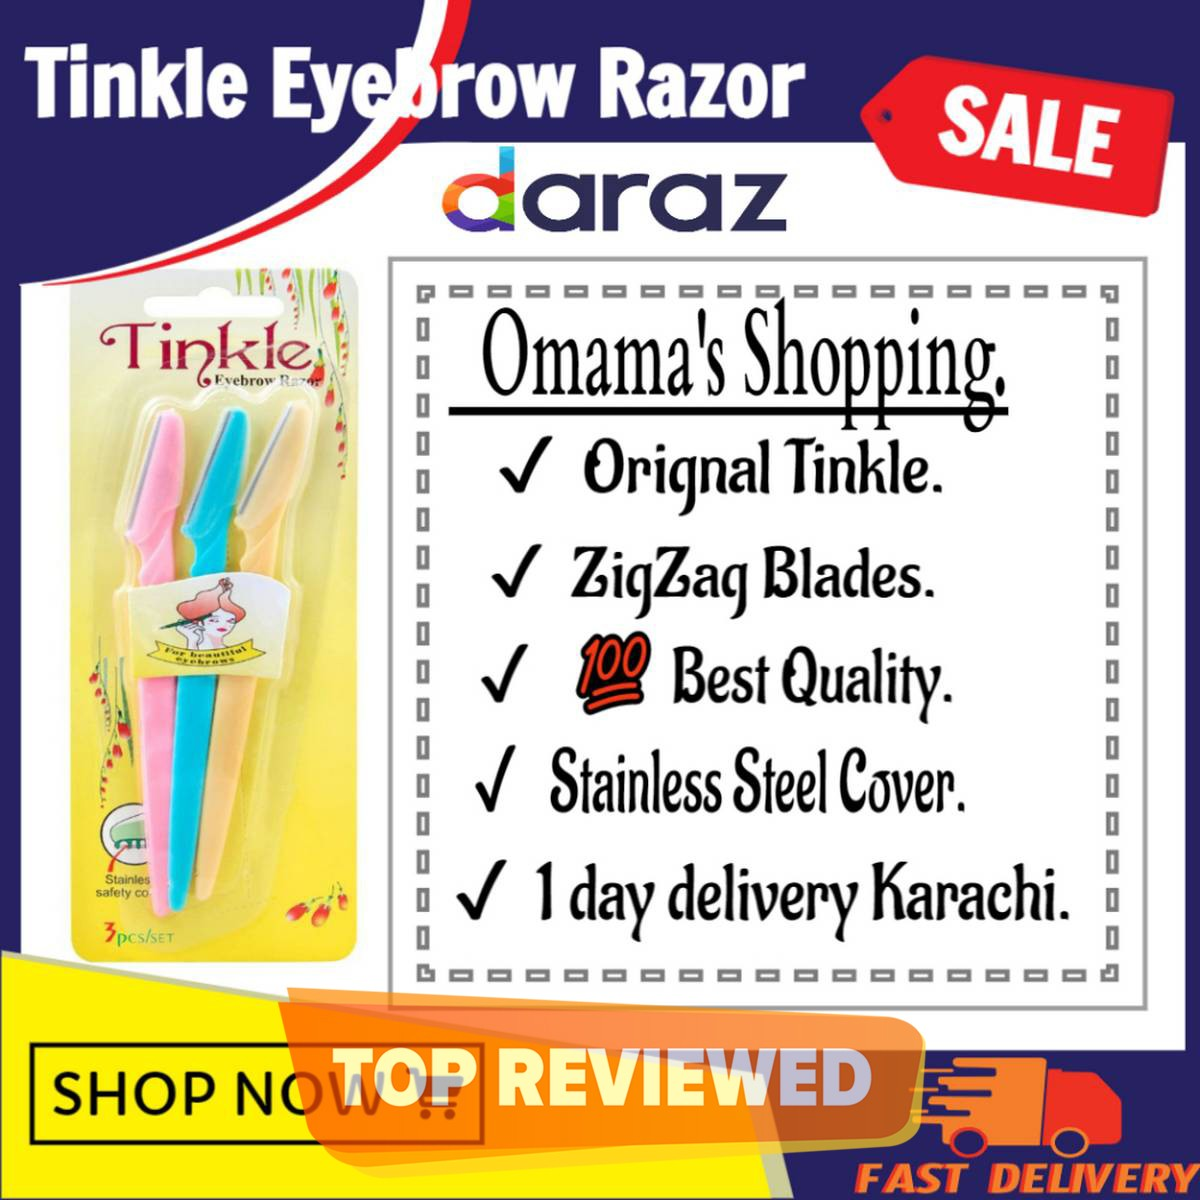 Tinkle Eyebrow Razor Colorful 3 Pack for face hair removal & Eyebrow shaper, 3Pcs Tinkle Original Eyebrow Razor Set with safety cover,